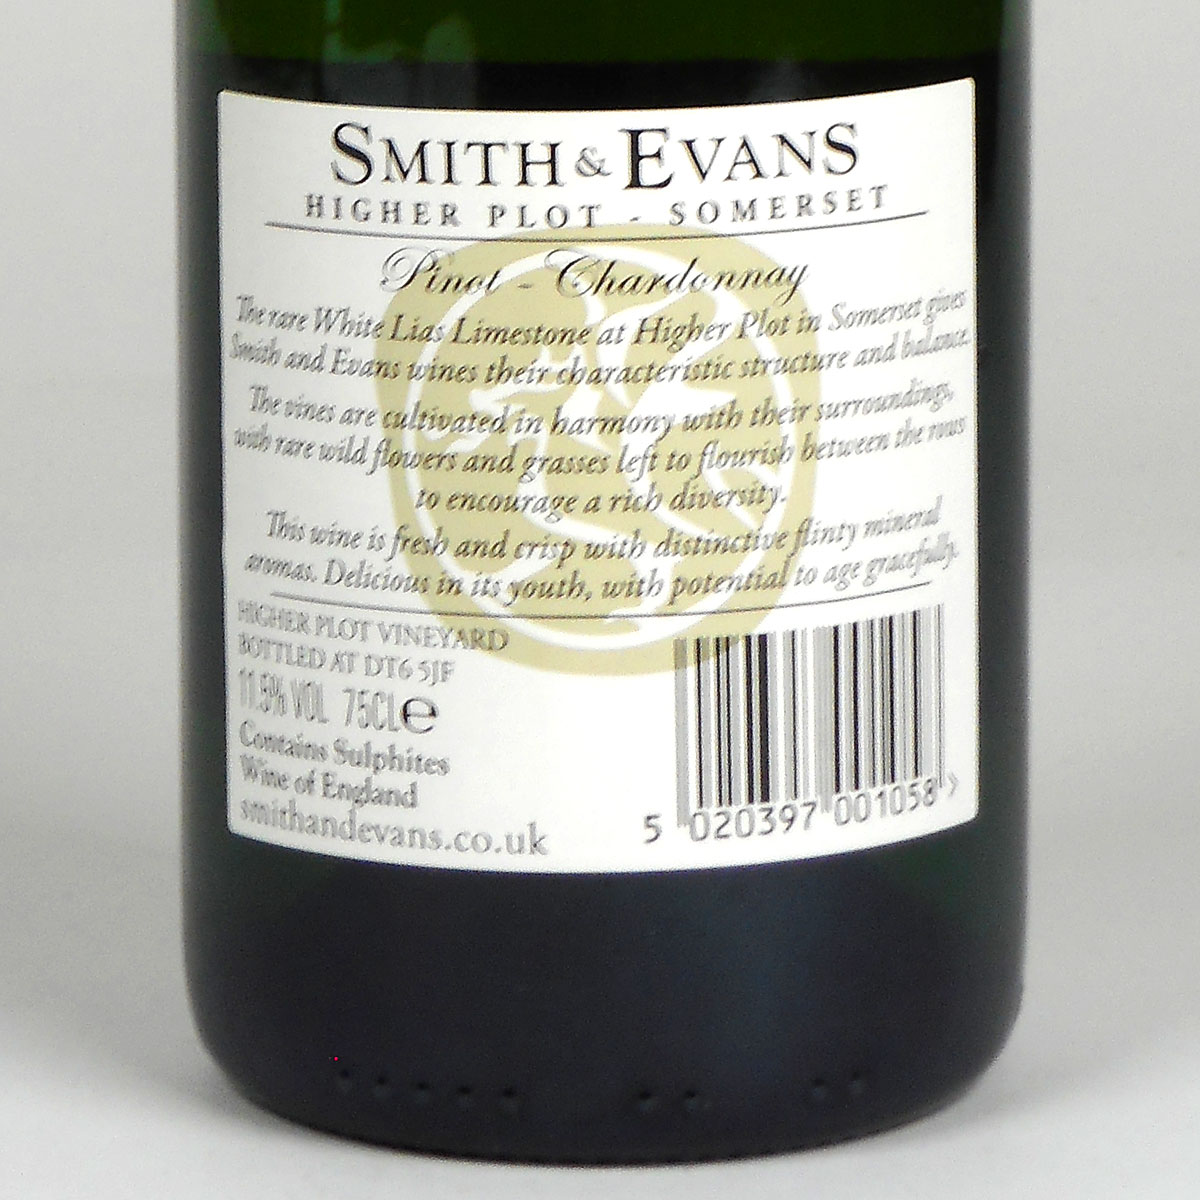 Smith and Evans: Pinot Chardonnay 2015 - WIne Bottle Rear Label